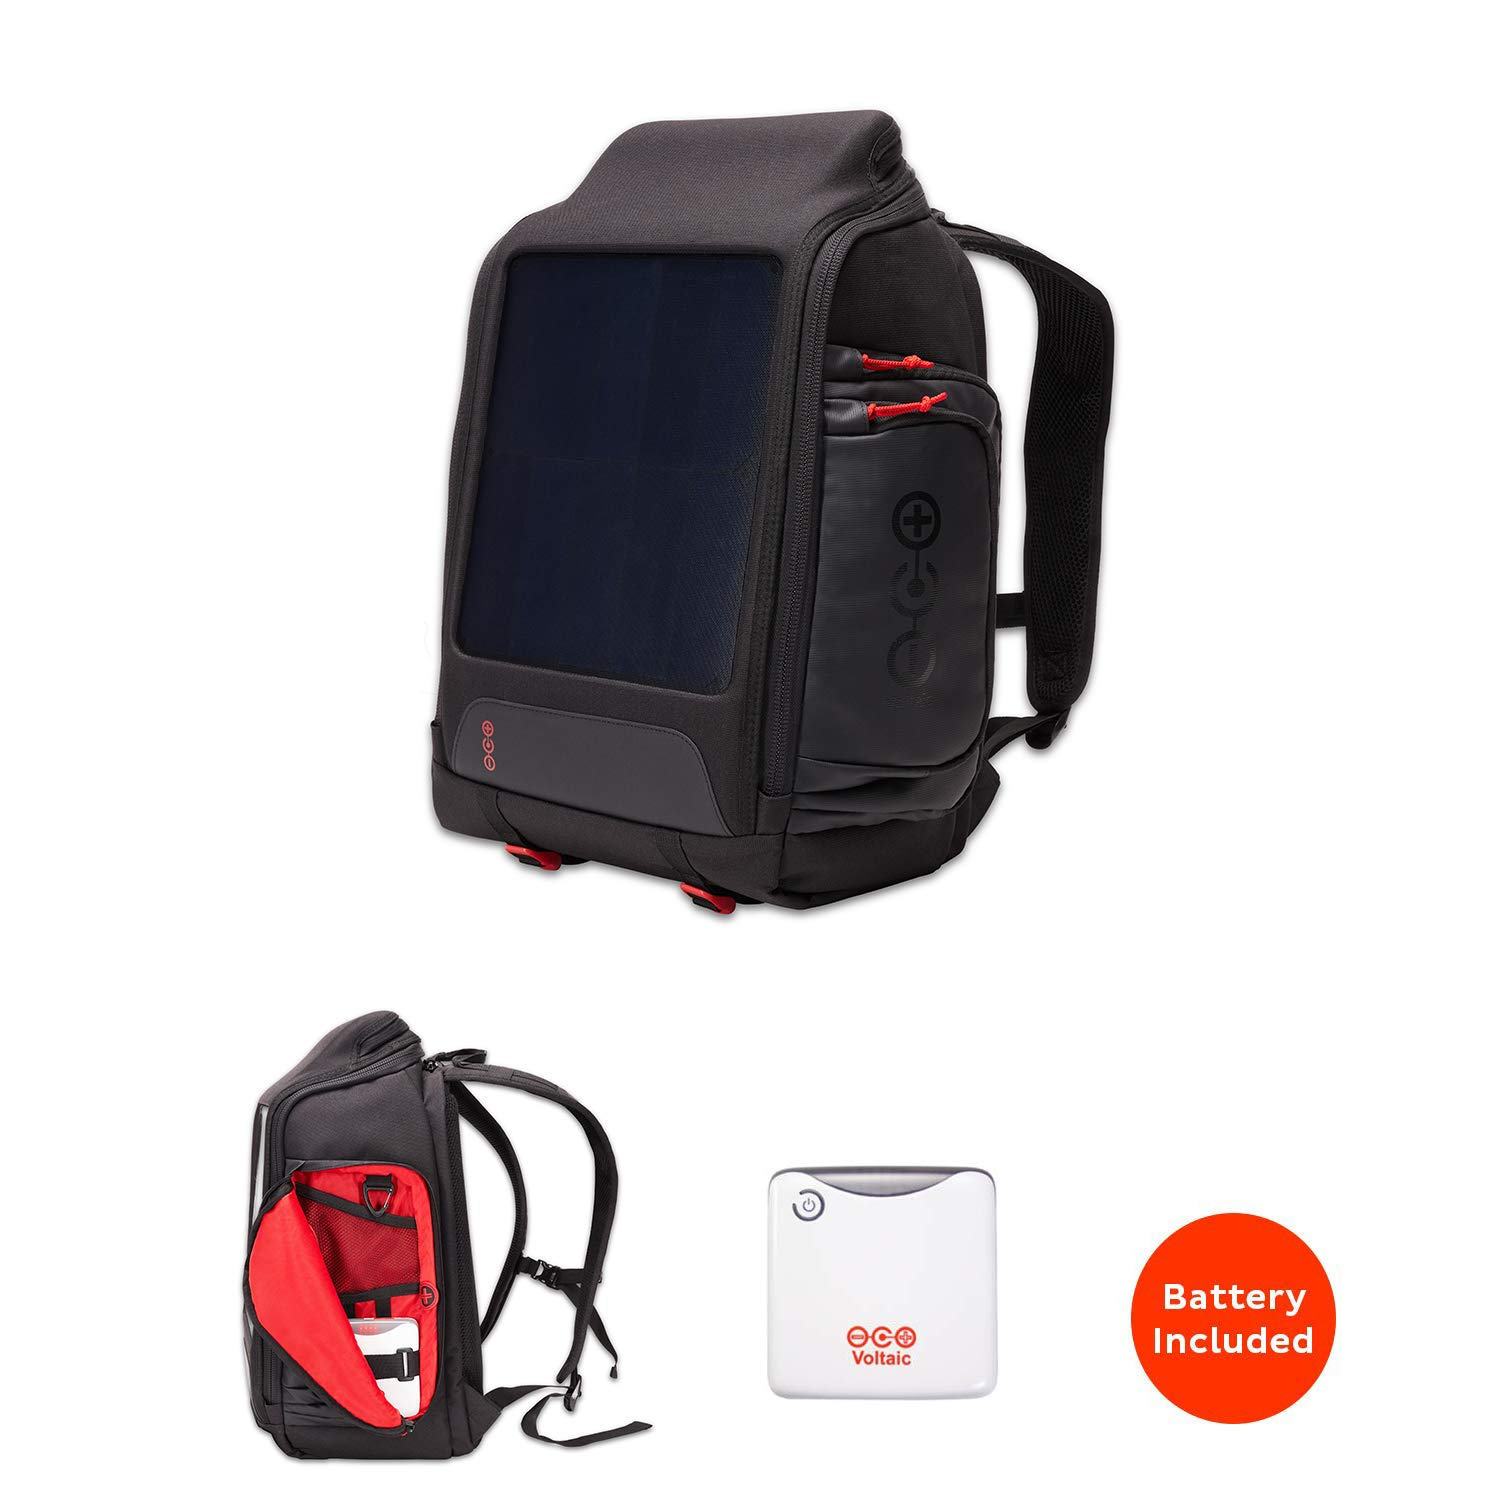 Voltaic Systems OffGrid 10 Watt Rapid Solar Backpack Charger | Includes a Battery Pack (Power Bank) and 2 Year Warranty | Powers Phones Including iPhone, Tablets, USB Devices, More